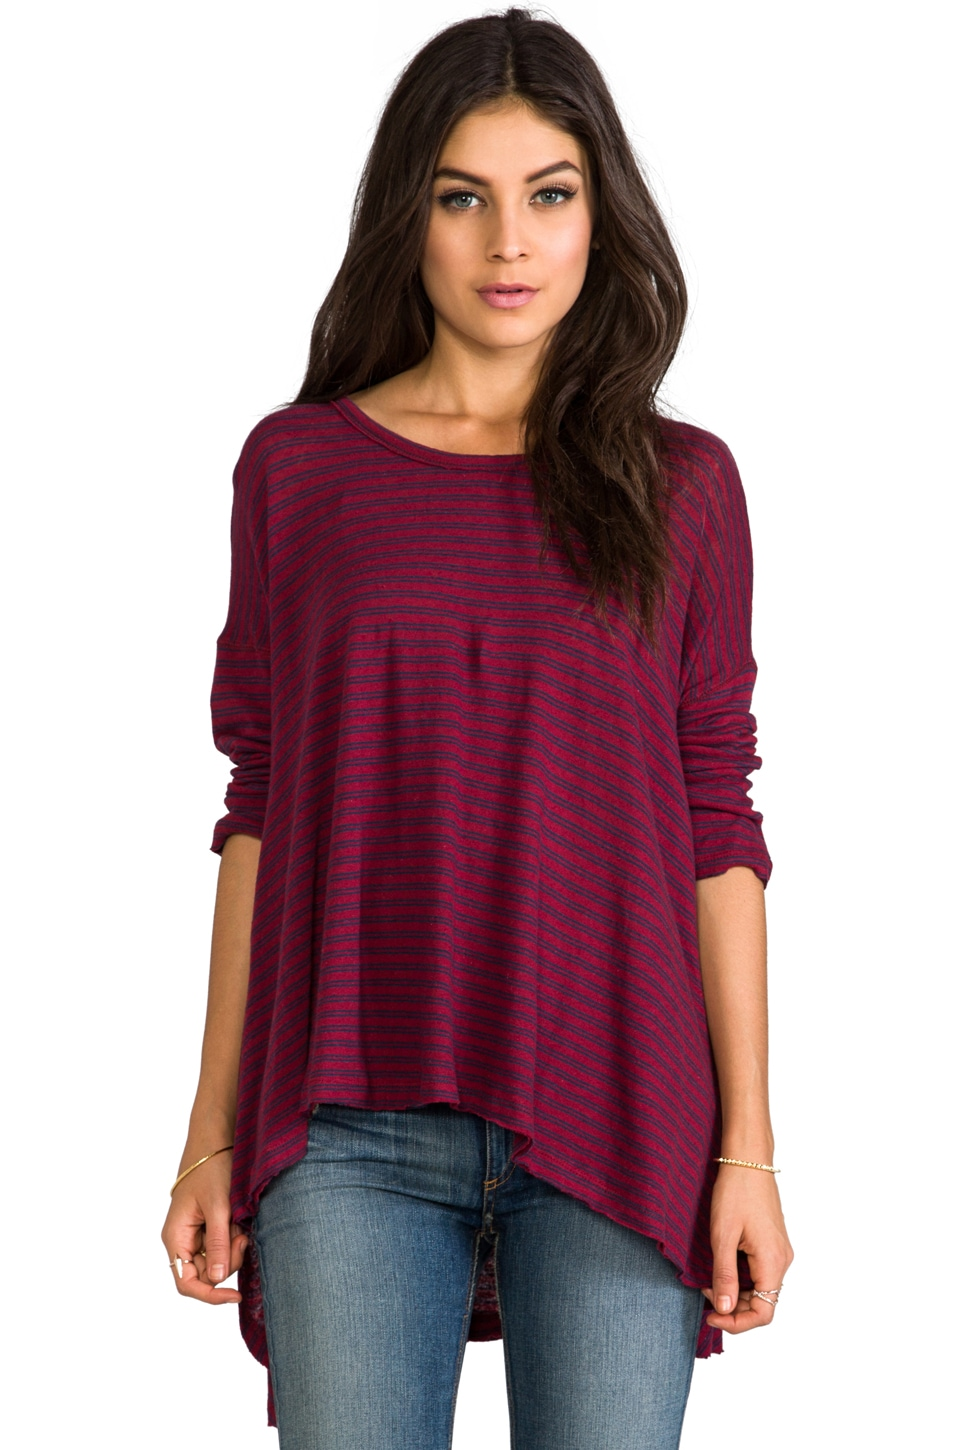 Free People In The Sand Tee in Berry/Navy